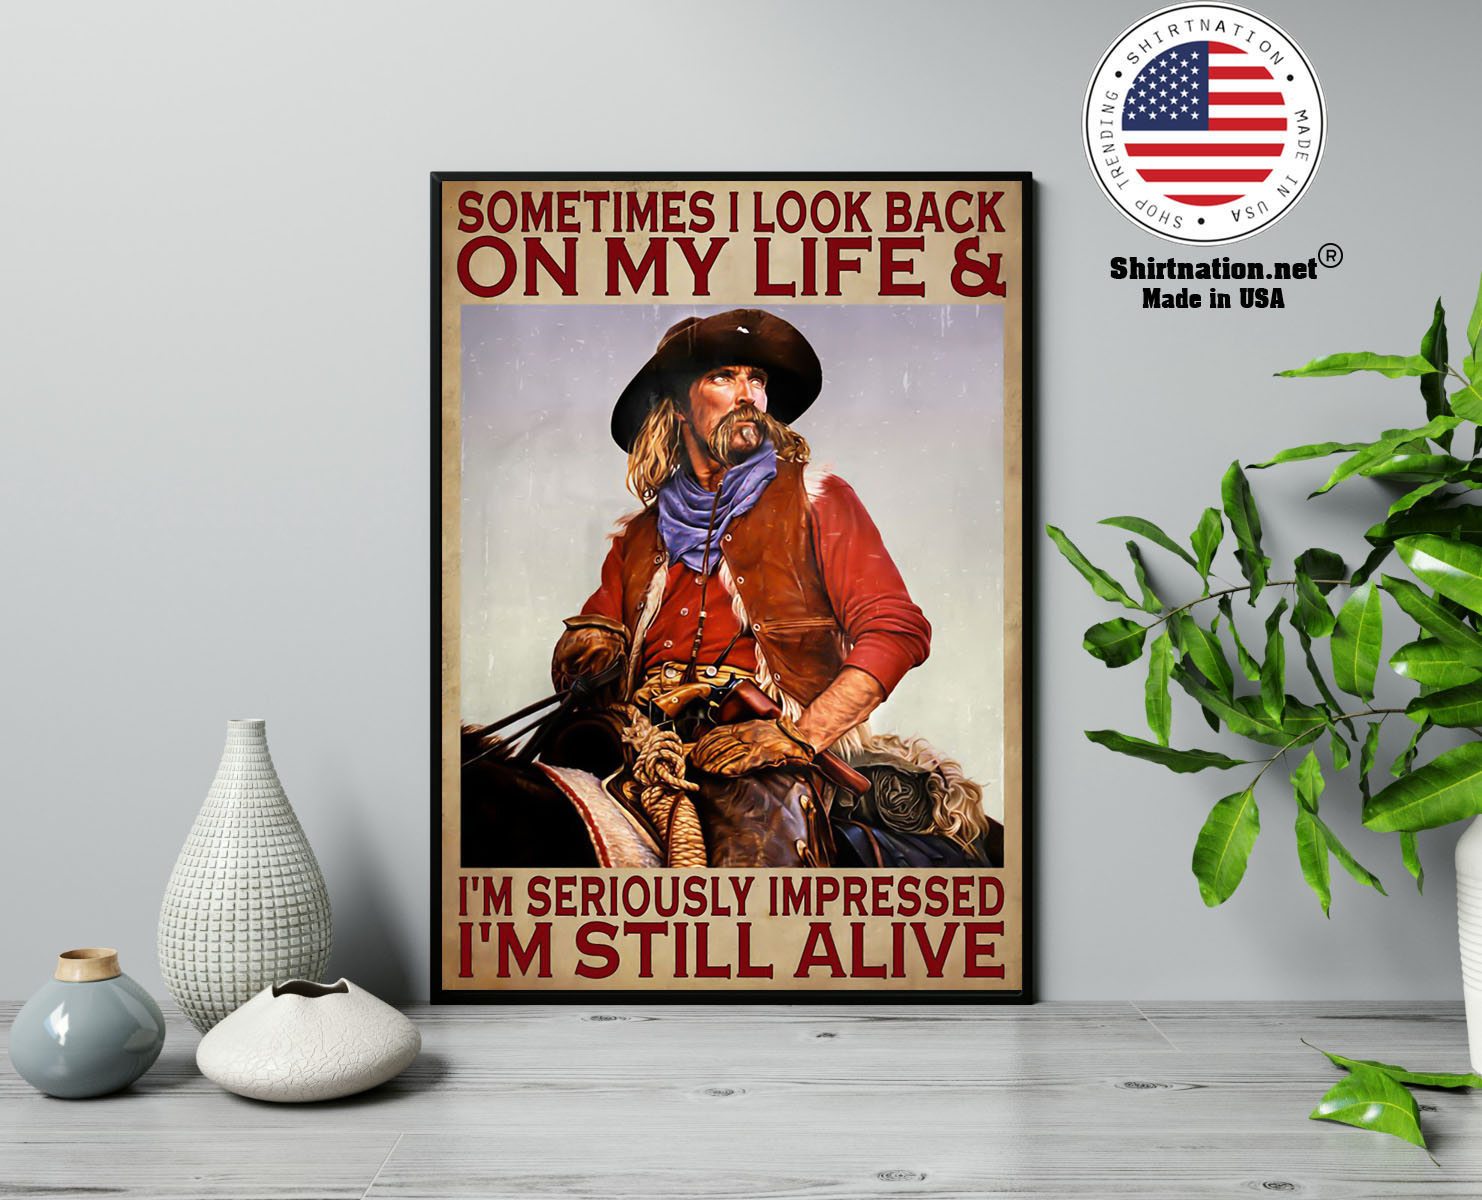 Sometimes I look back on my life and Im seriously impressed Im still alive poster 13